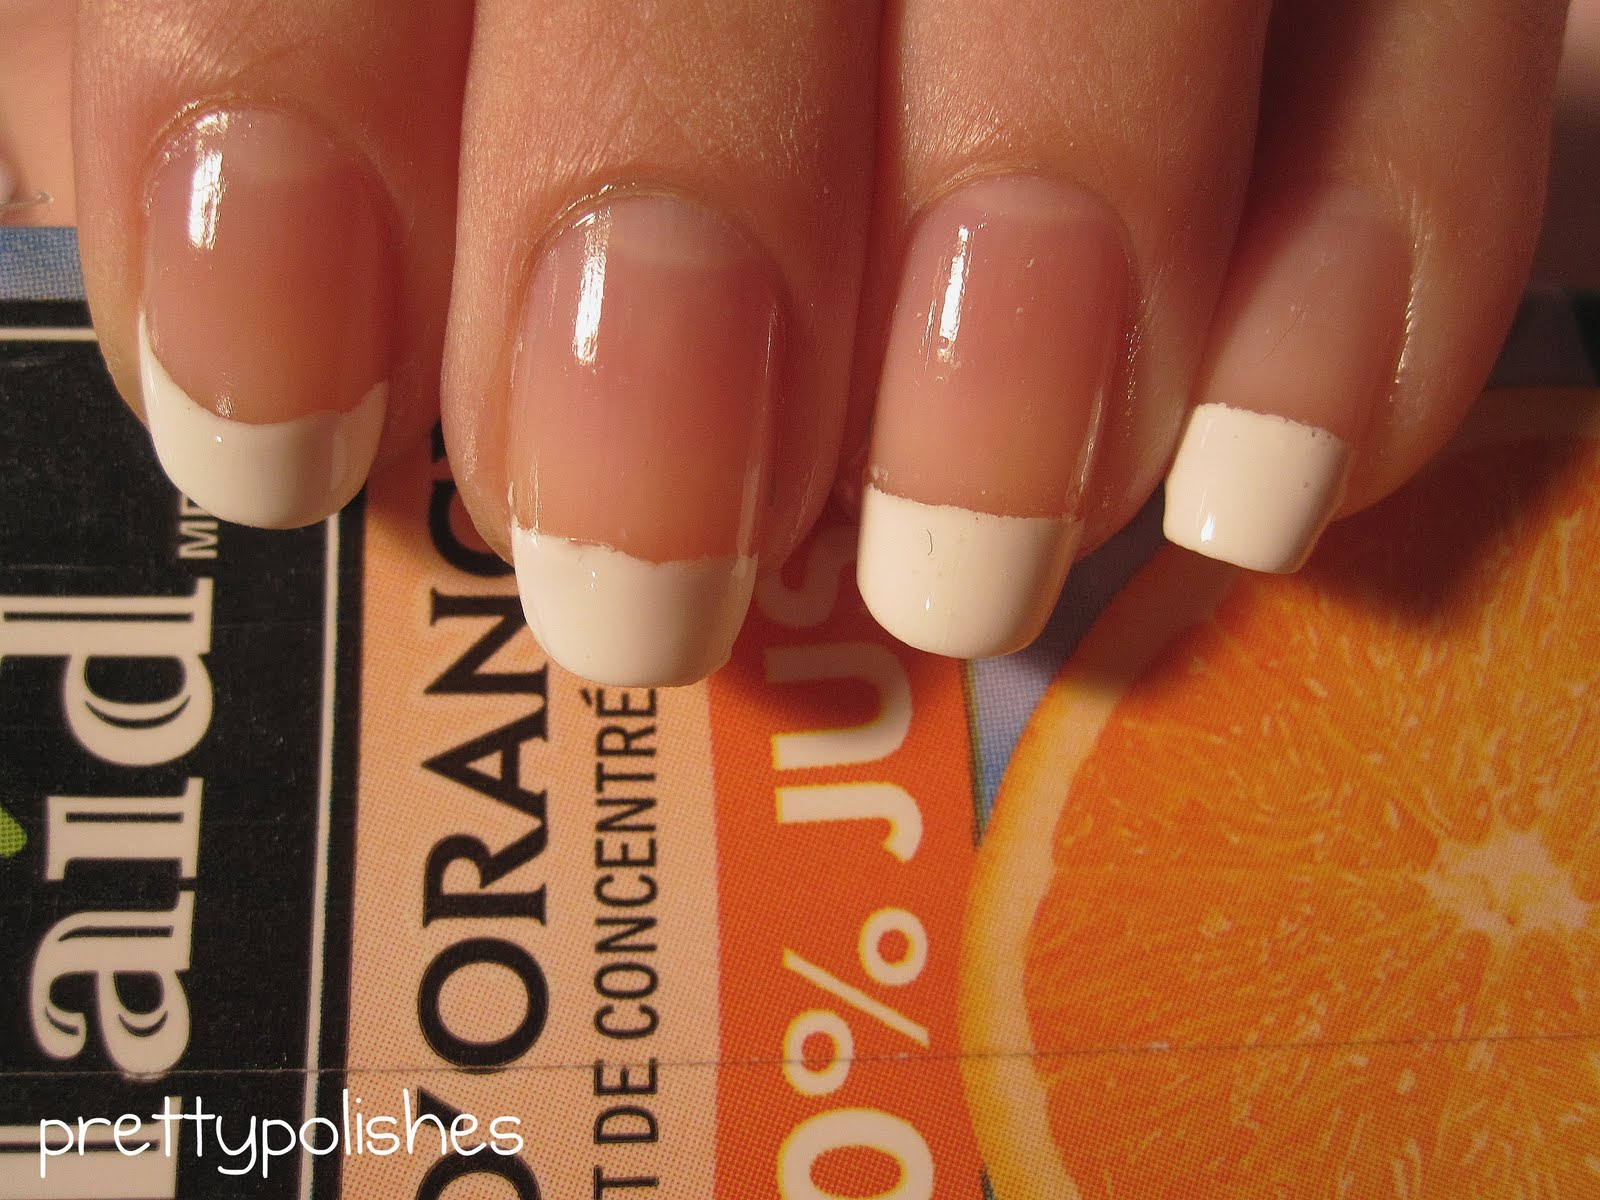 prettypolishes: Easy French Tips (Square & Round Shape Nails)